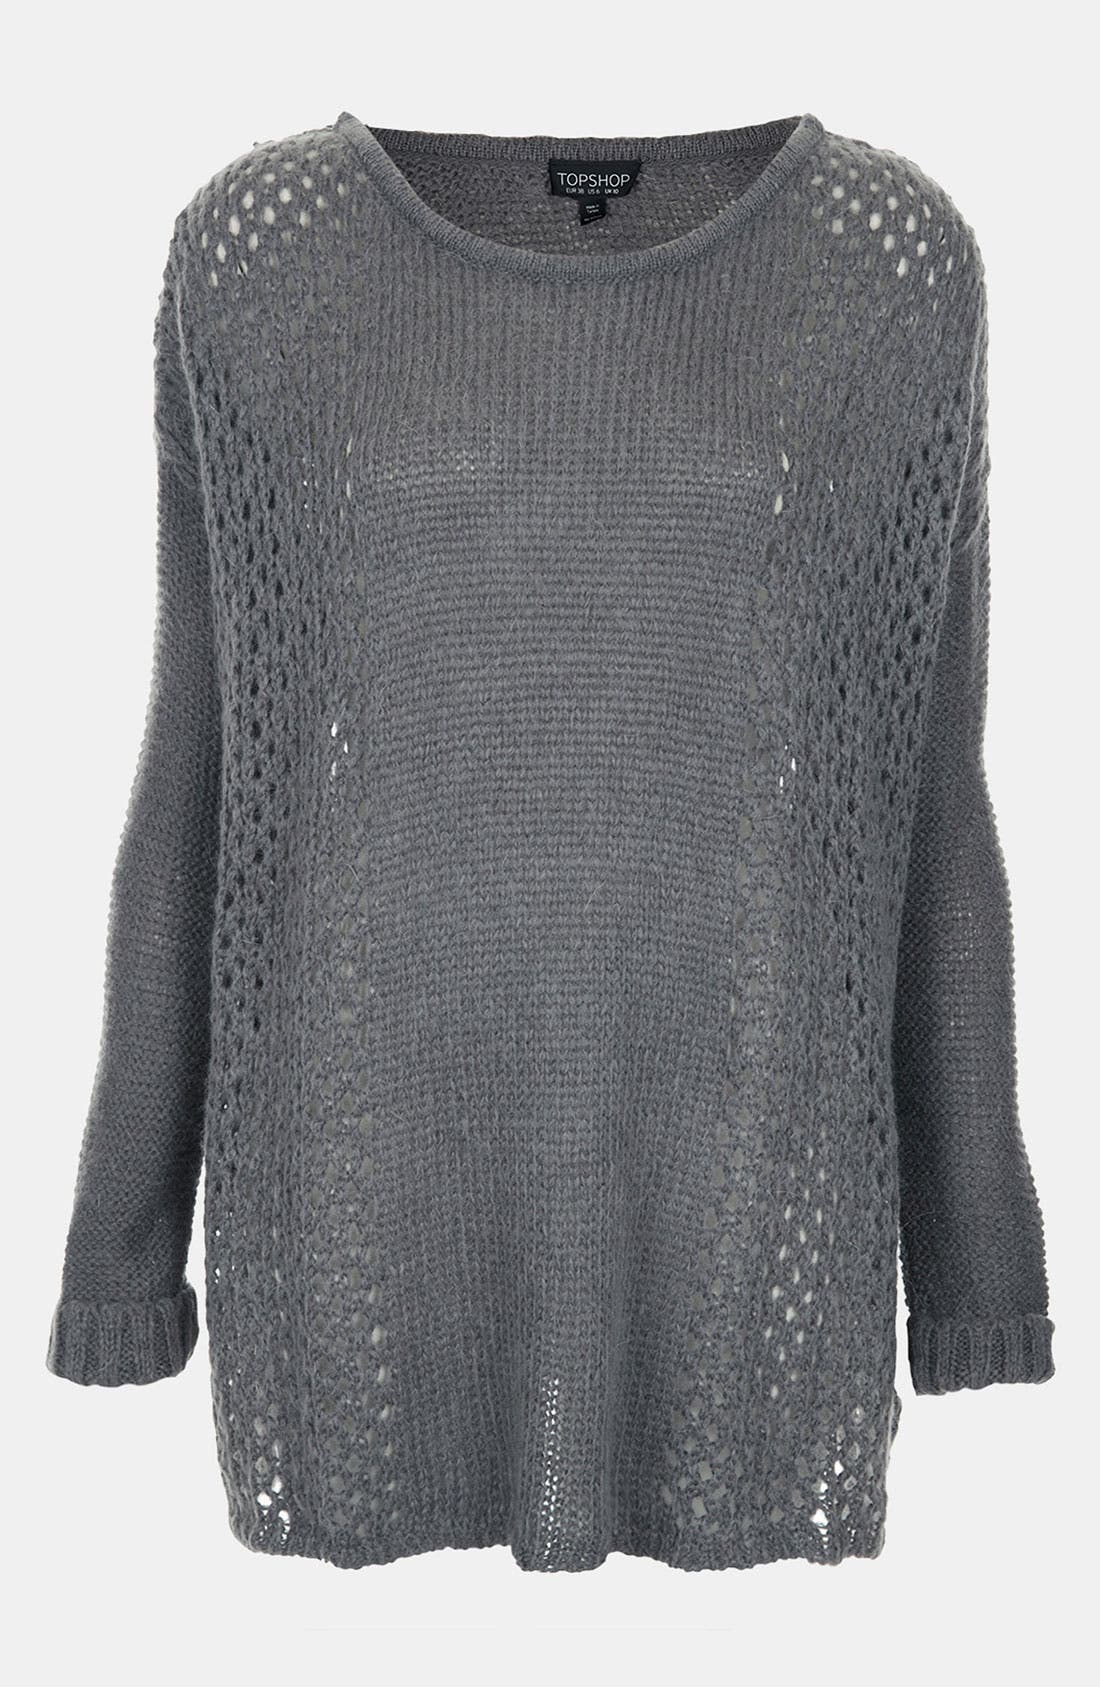 Main Image - Topshop 'Rock Girl' Slouchy Mesh Knit Sweater